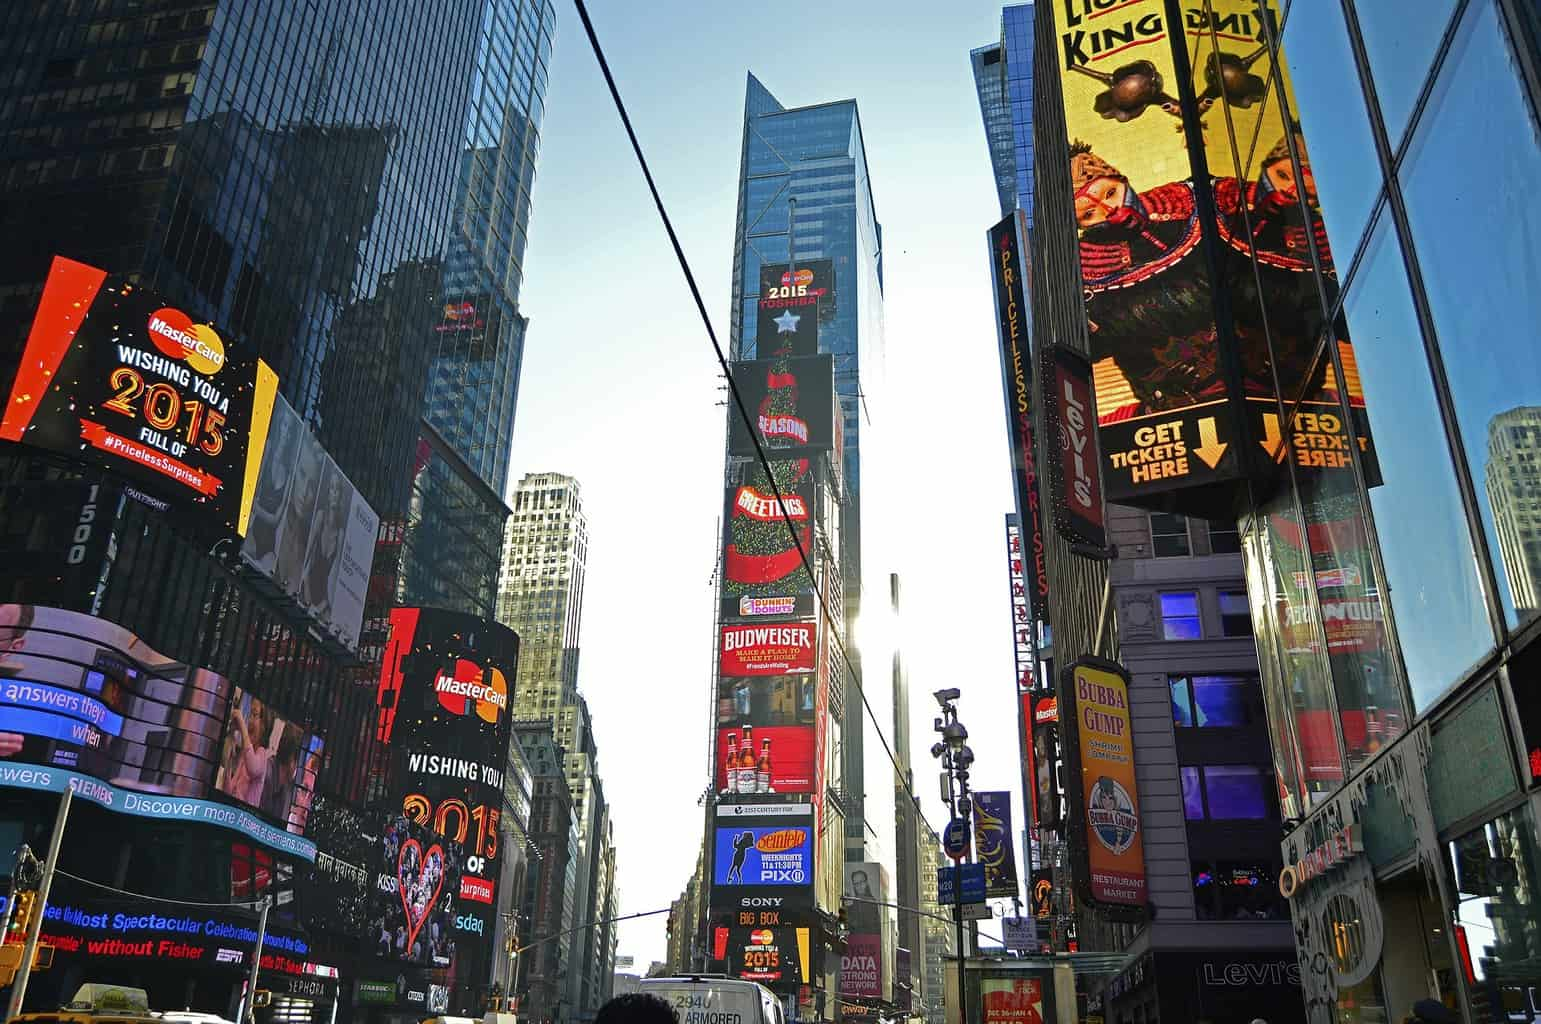 The bright lights and Broadway posters that you'll find throughout Times Square.